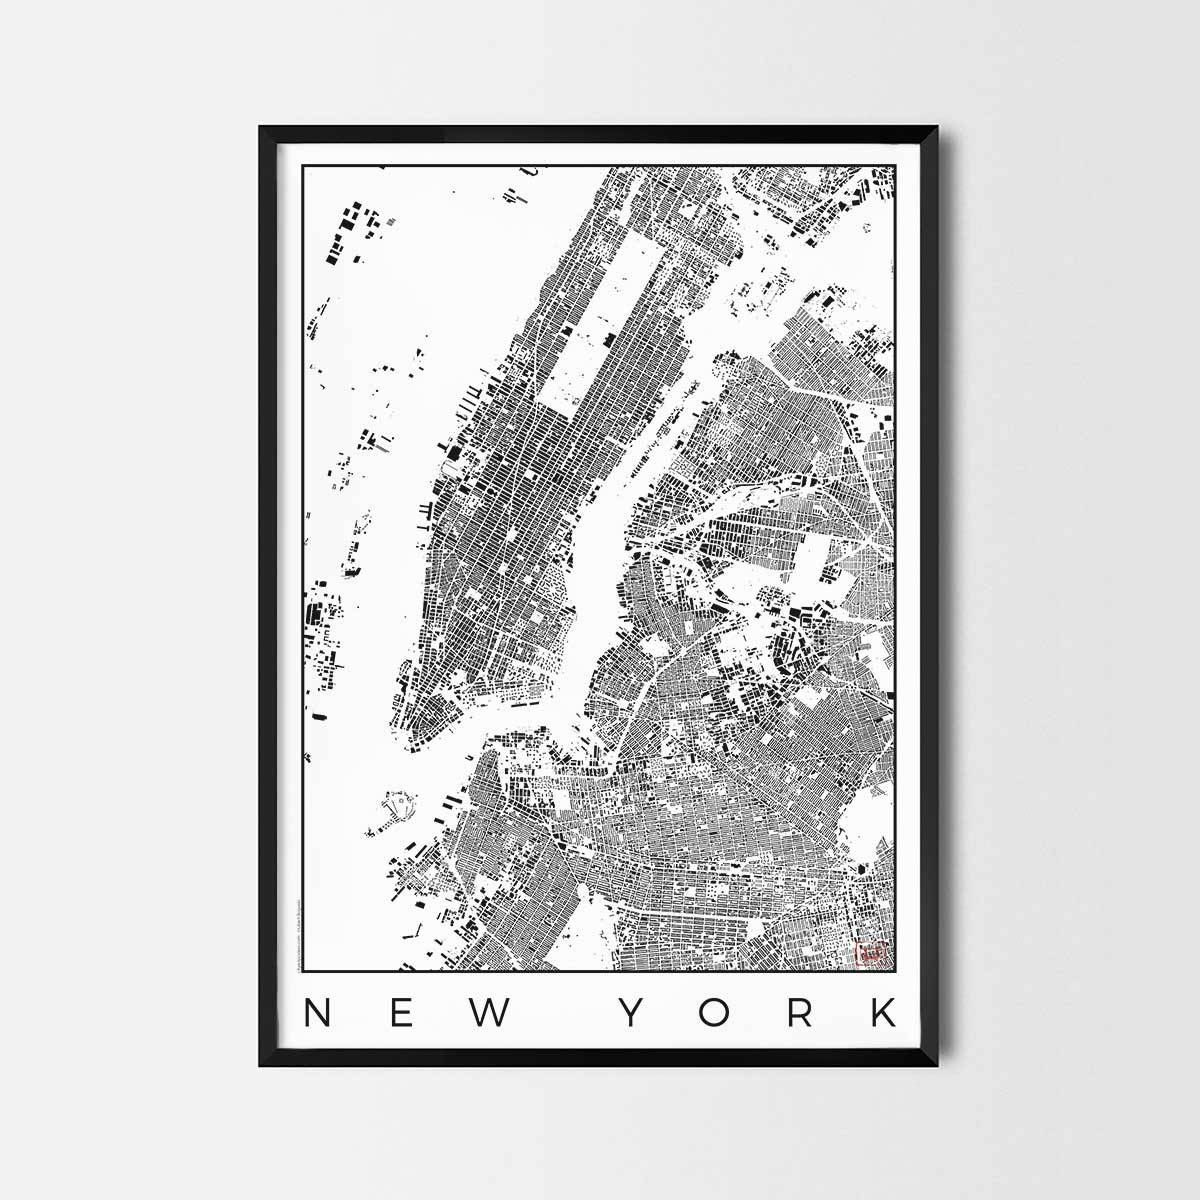 City Art Posters | Map Posters And Art Prints – Gifts For City Inside Most Current City Prints Map Wall Art (View 2 of 20)